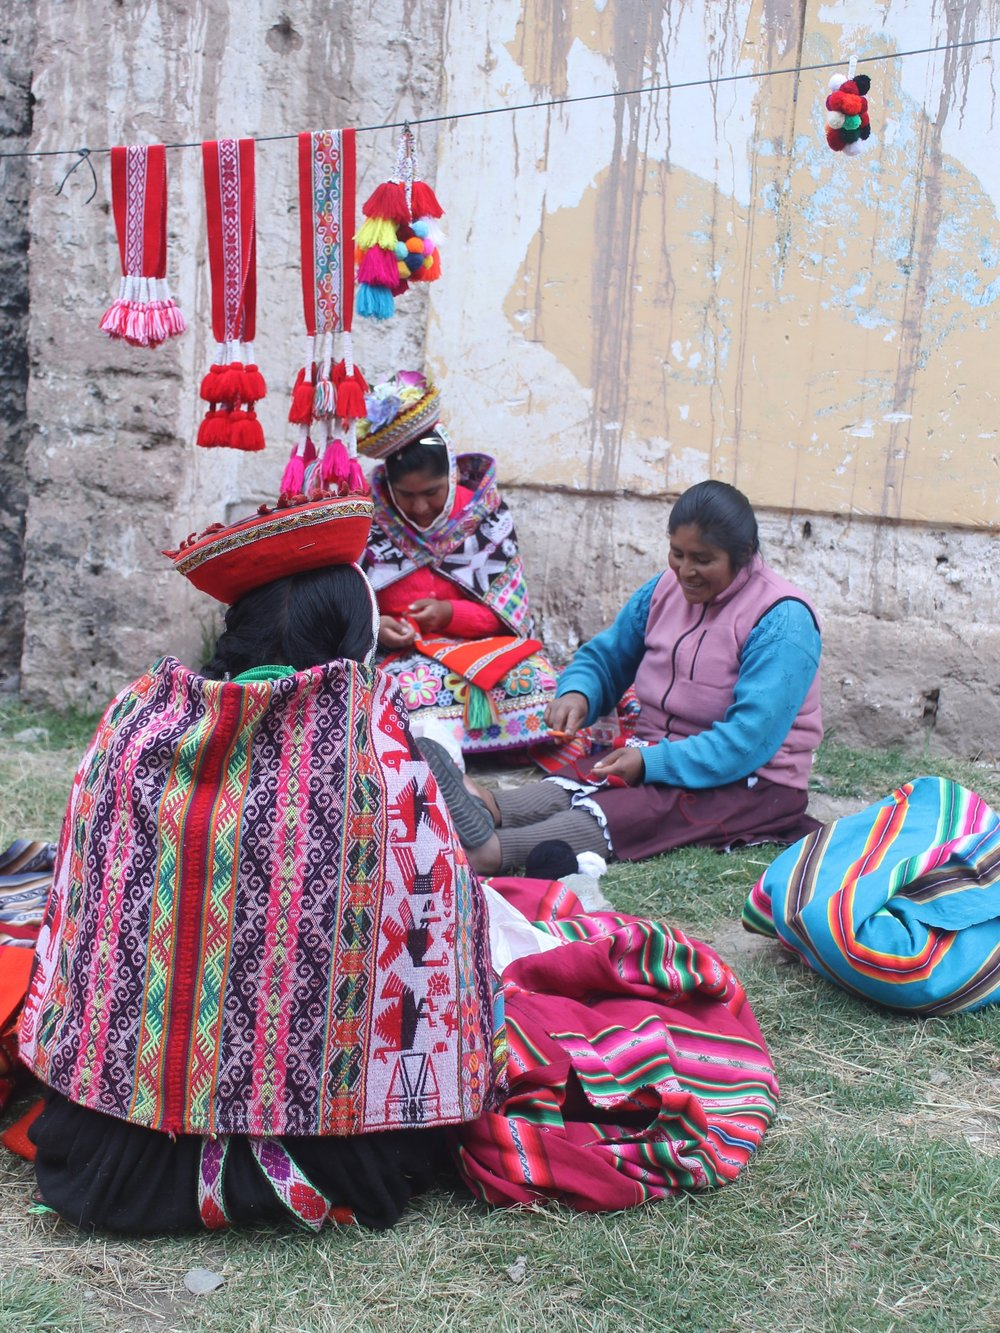 The Project   Together with the Plan Wallata project, SPI is working with local female textile artisans to bring them more economic opportunities. Local women have been trained to make new products using the traditional back-strap loom techniques, as well as how to better run their businesses.